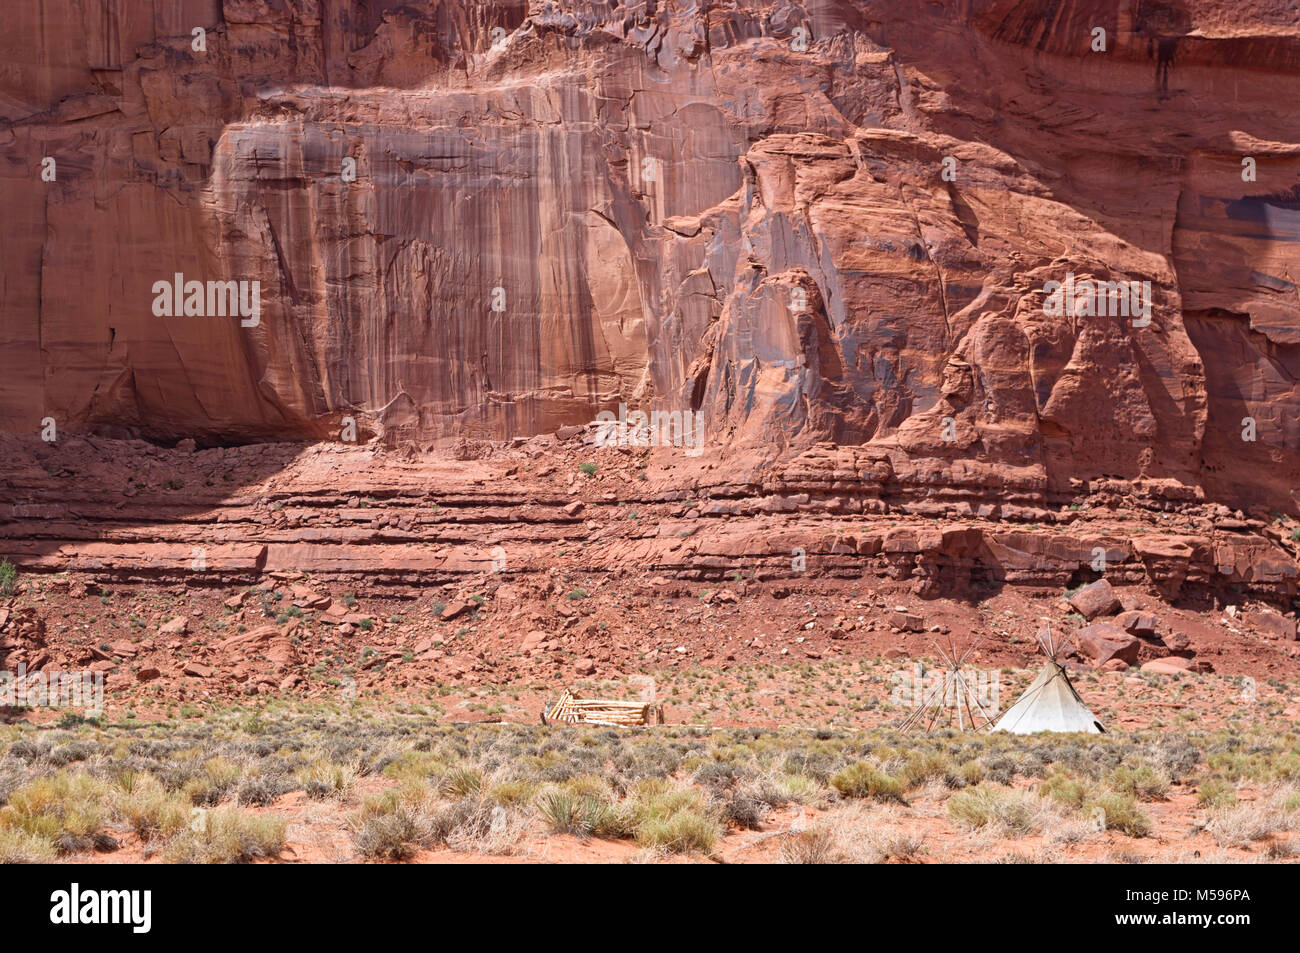 Indians tent in front of a red rock cliff in a remote spot in the famous Monument Valley USA. Navajo traditional c& in the desert. Concept for adve & Indians tent in front of a red rock cliff in a remote spot in the ...